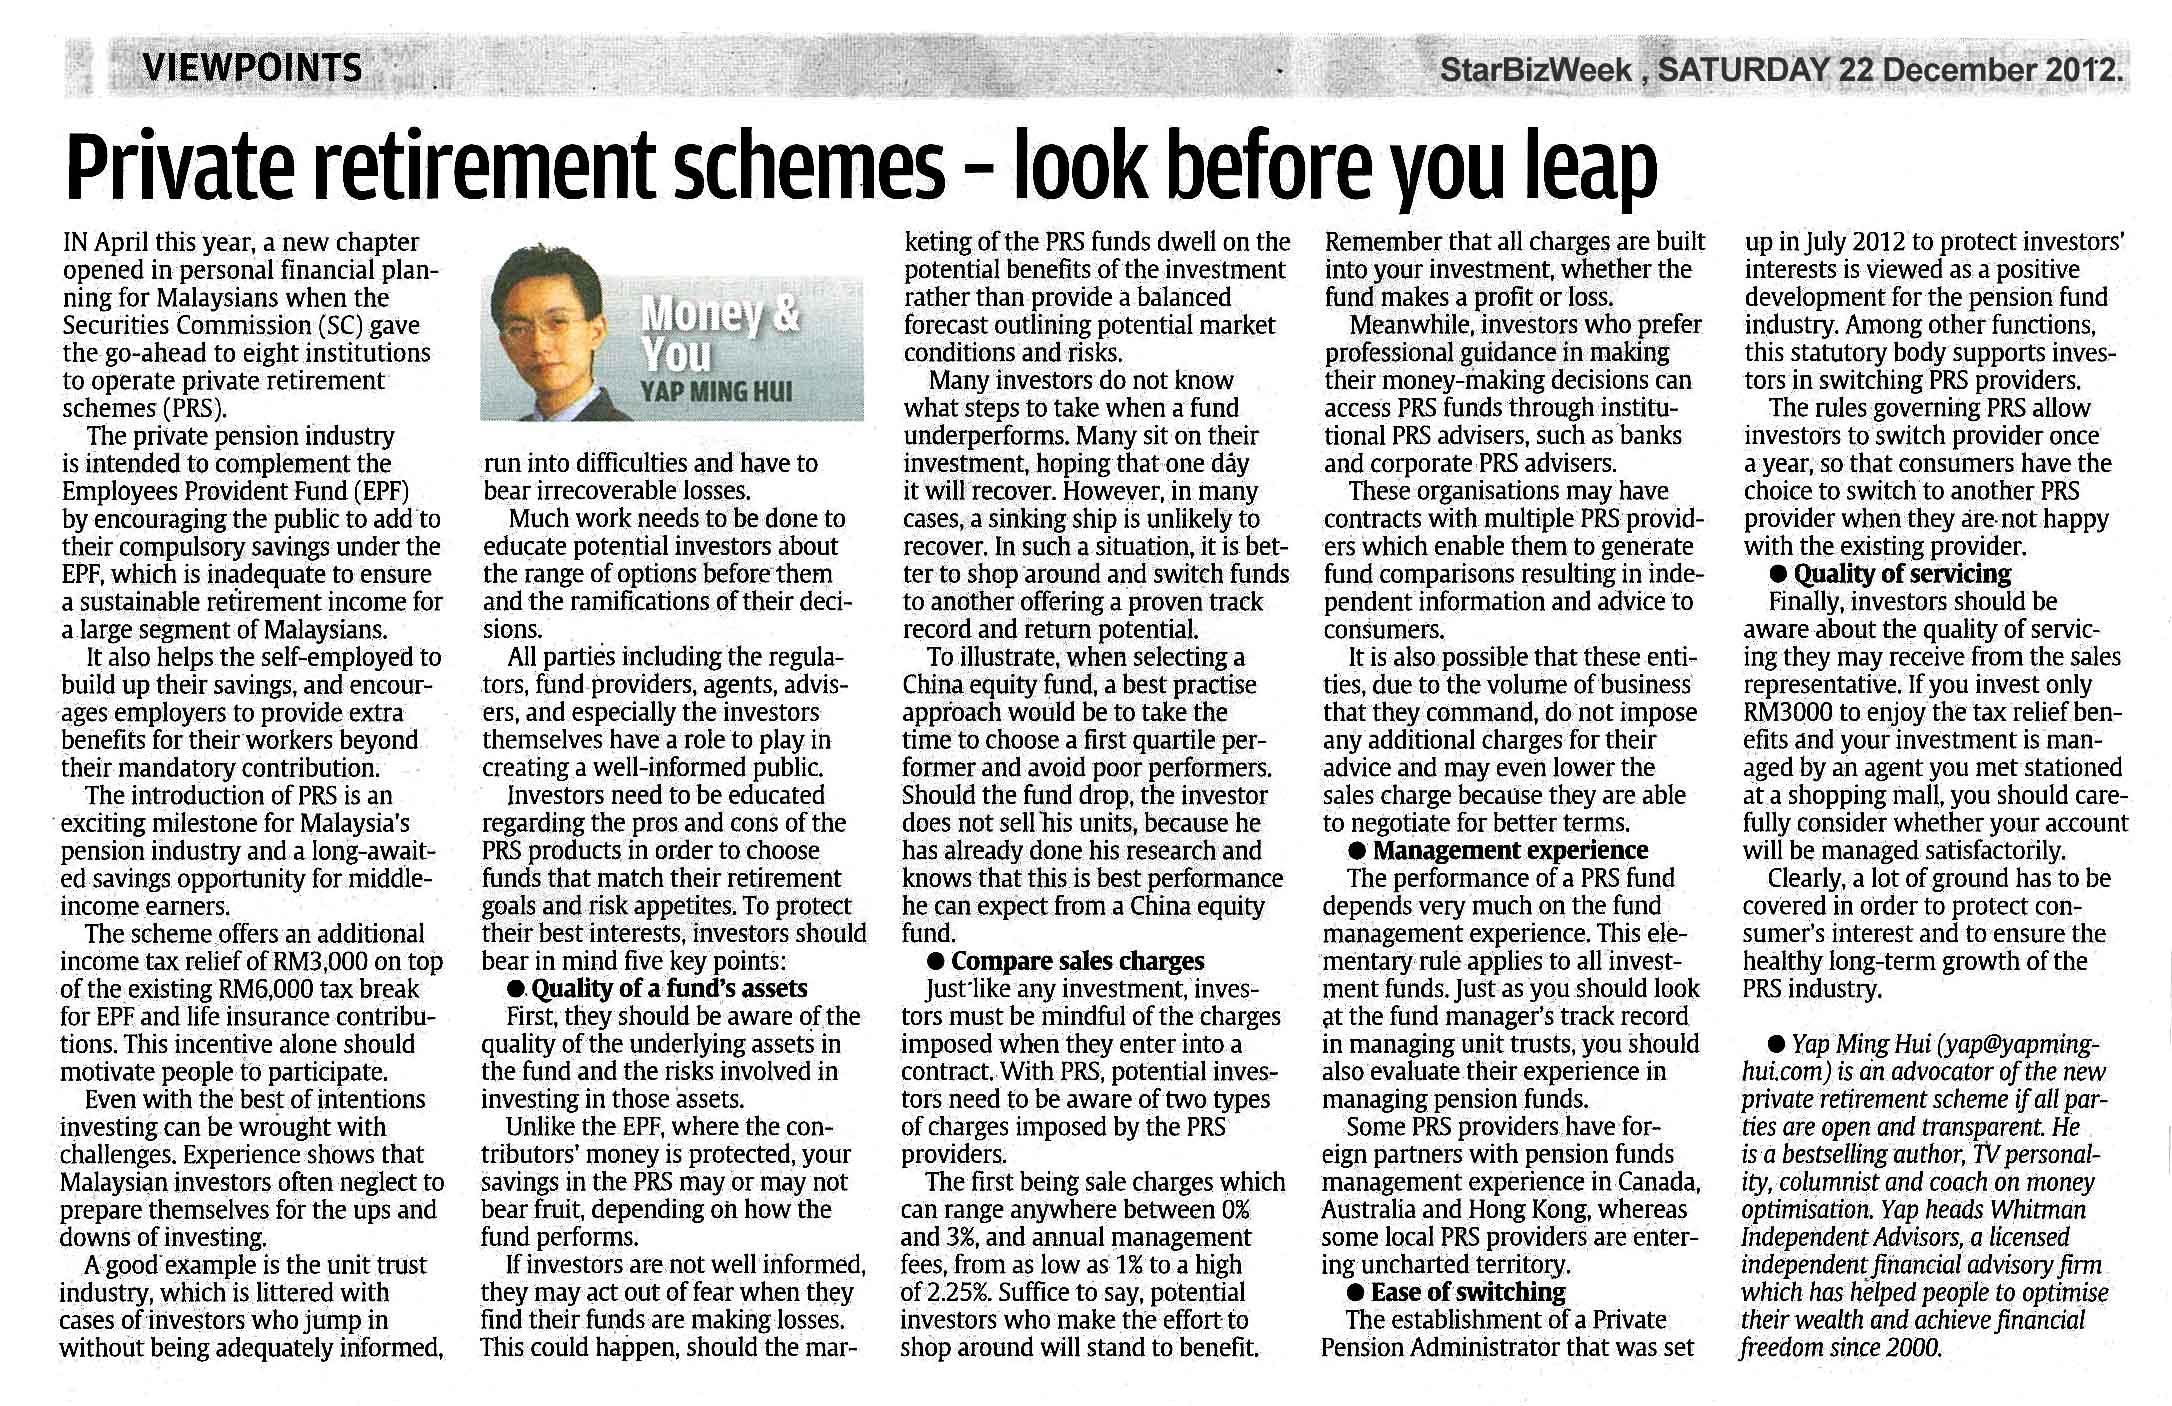 Private Retirement Schemes - Look Before You Leap - 22 Dec 2012